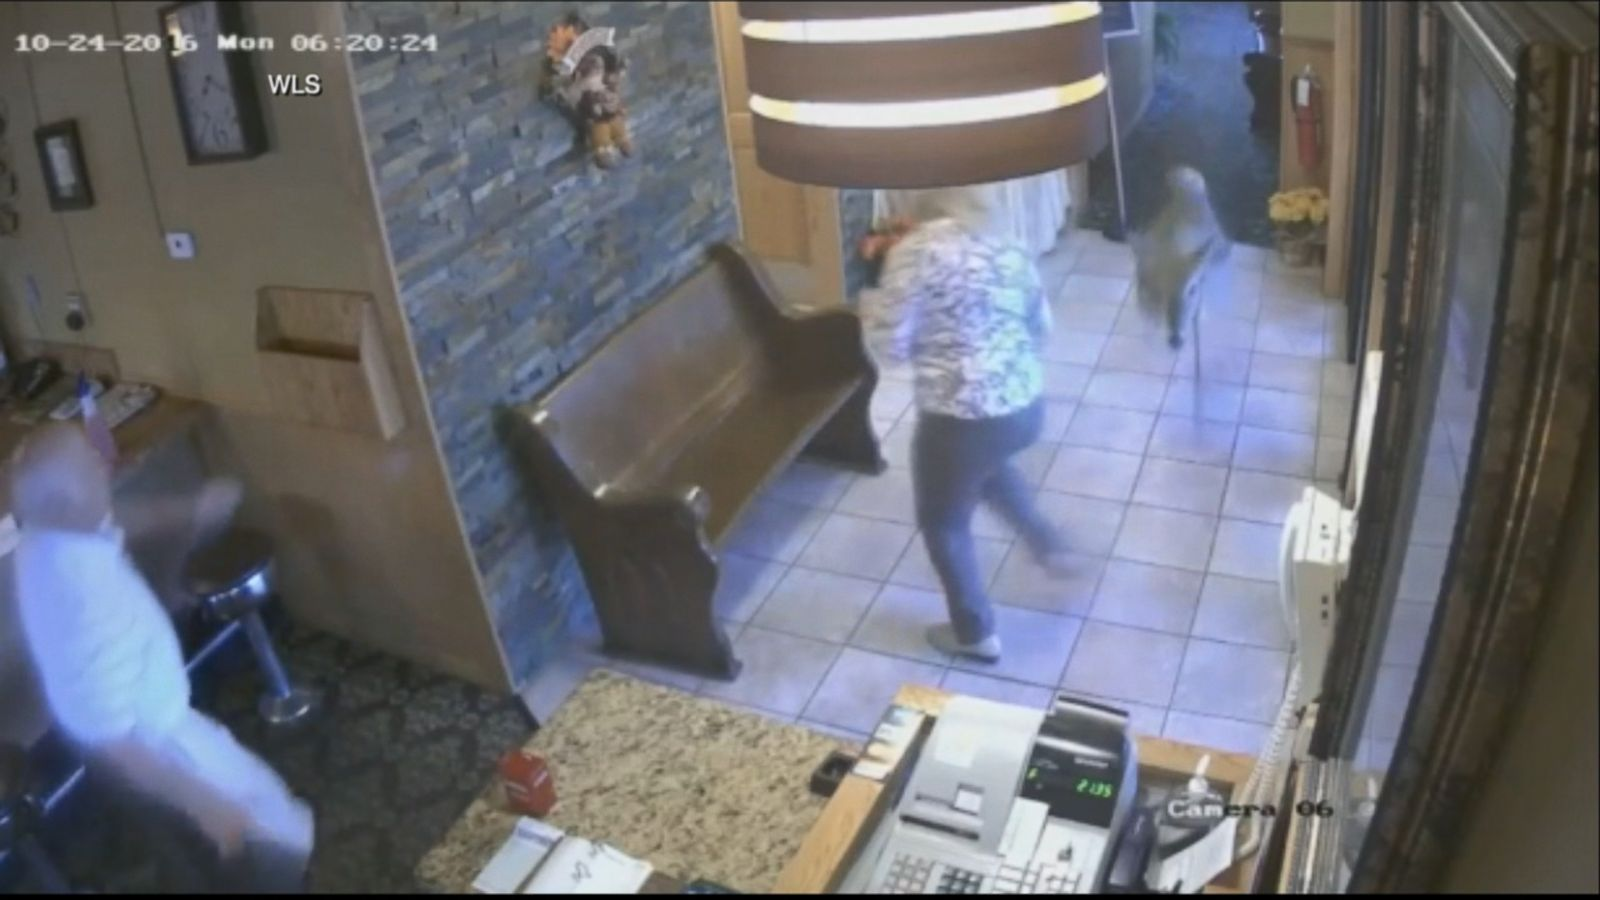 VIDEO: The unexpected dinner guest eventually escaped through a window.